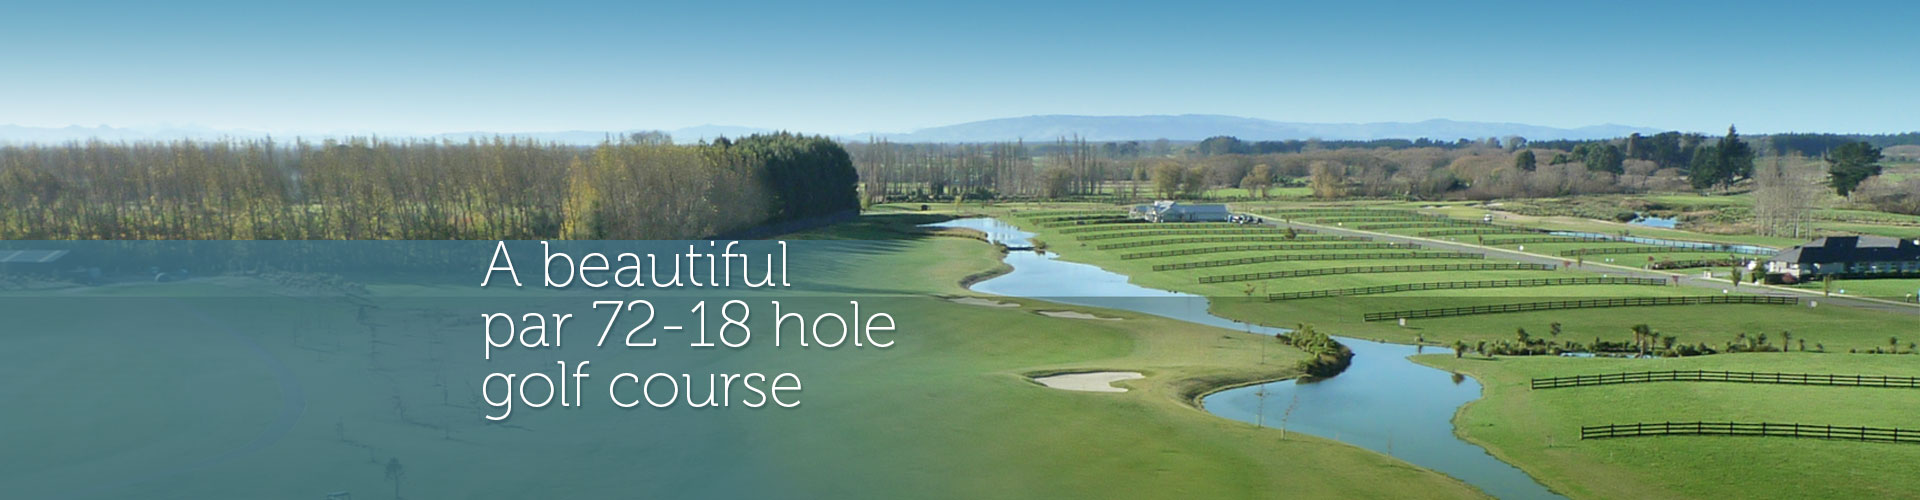 an overview of golf clubs Overview: great people: great golf: great fun: fiscally sound private golf club with over 40 years of tradition and success easily find a game with numerous men's, women's, and couple's groups on either of our two golf courses which have been recently r.